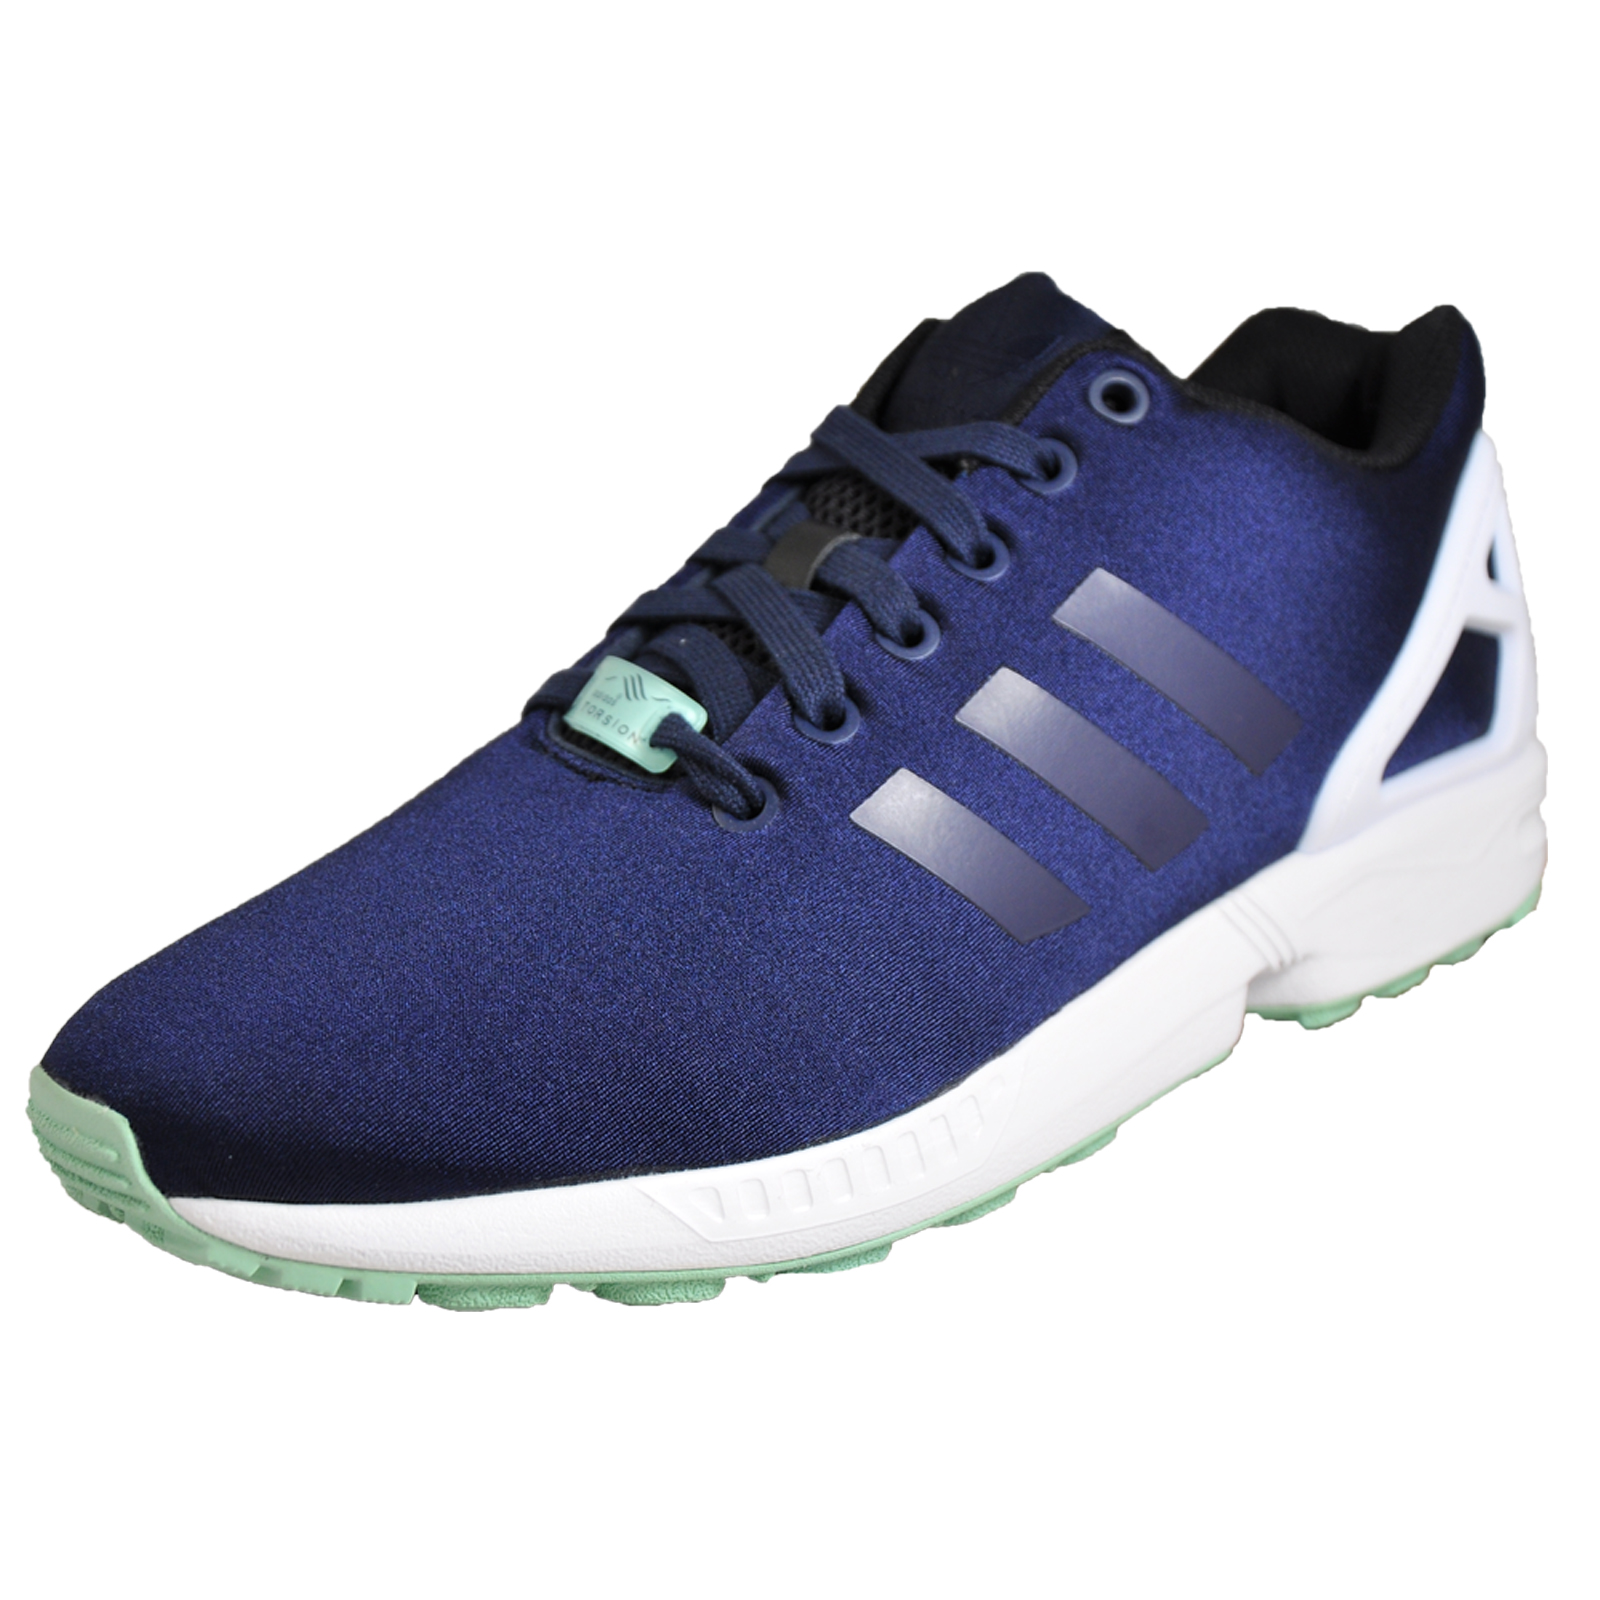 cd88d4c4cd848 Adidas Originals ZX Flux Men s Casual Retro Gym Fashion Trainers Navy